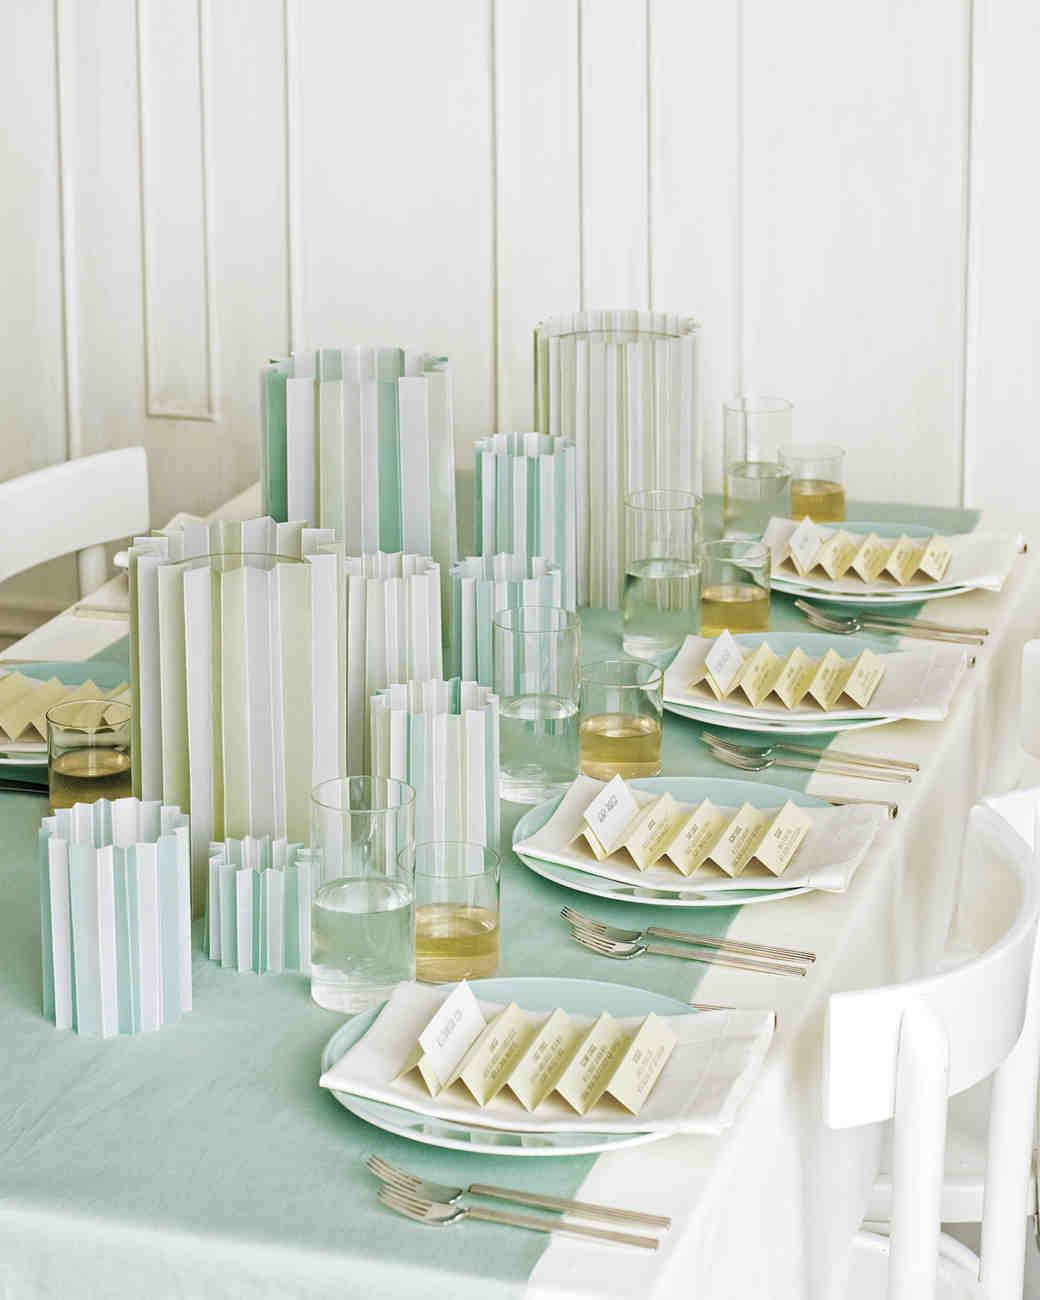 stripes-table-settings-mwd108186.jpg